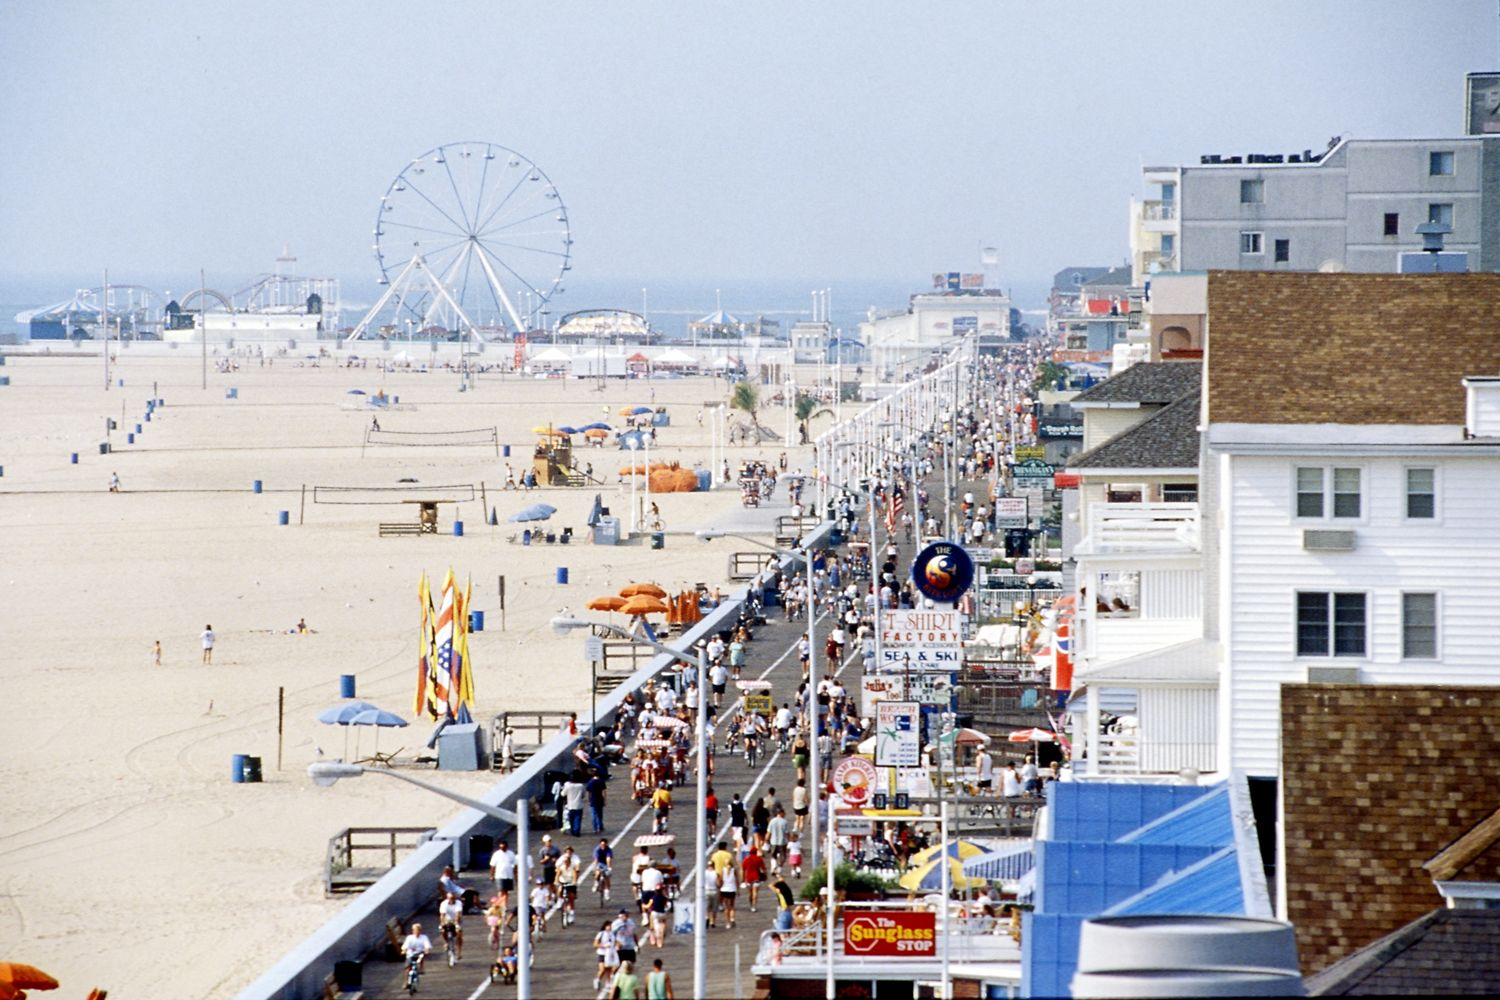 dating in ocean city maryland The wellington hotel is close to everything ocean city, maryland has to offer must call 14 days prior to your scheduled arrival date to cancel your reservation.